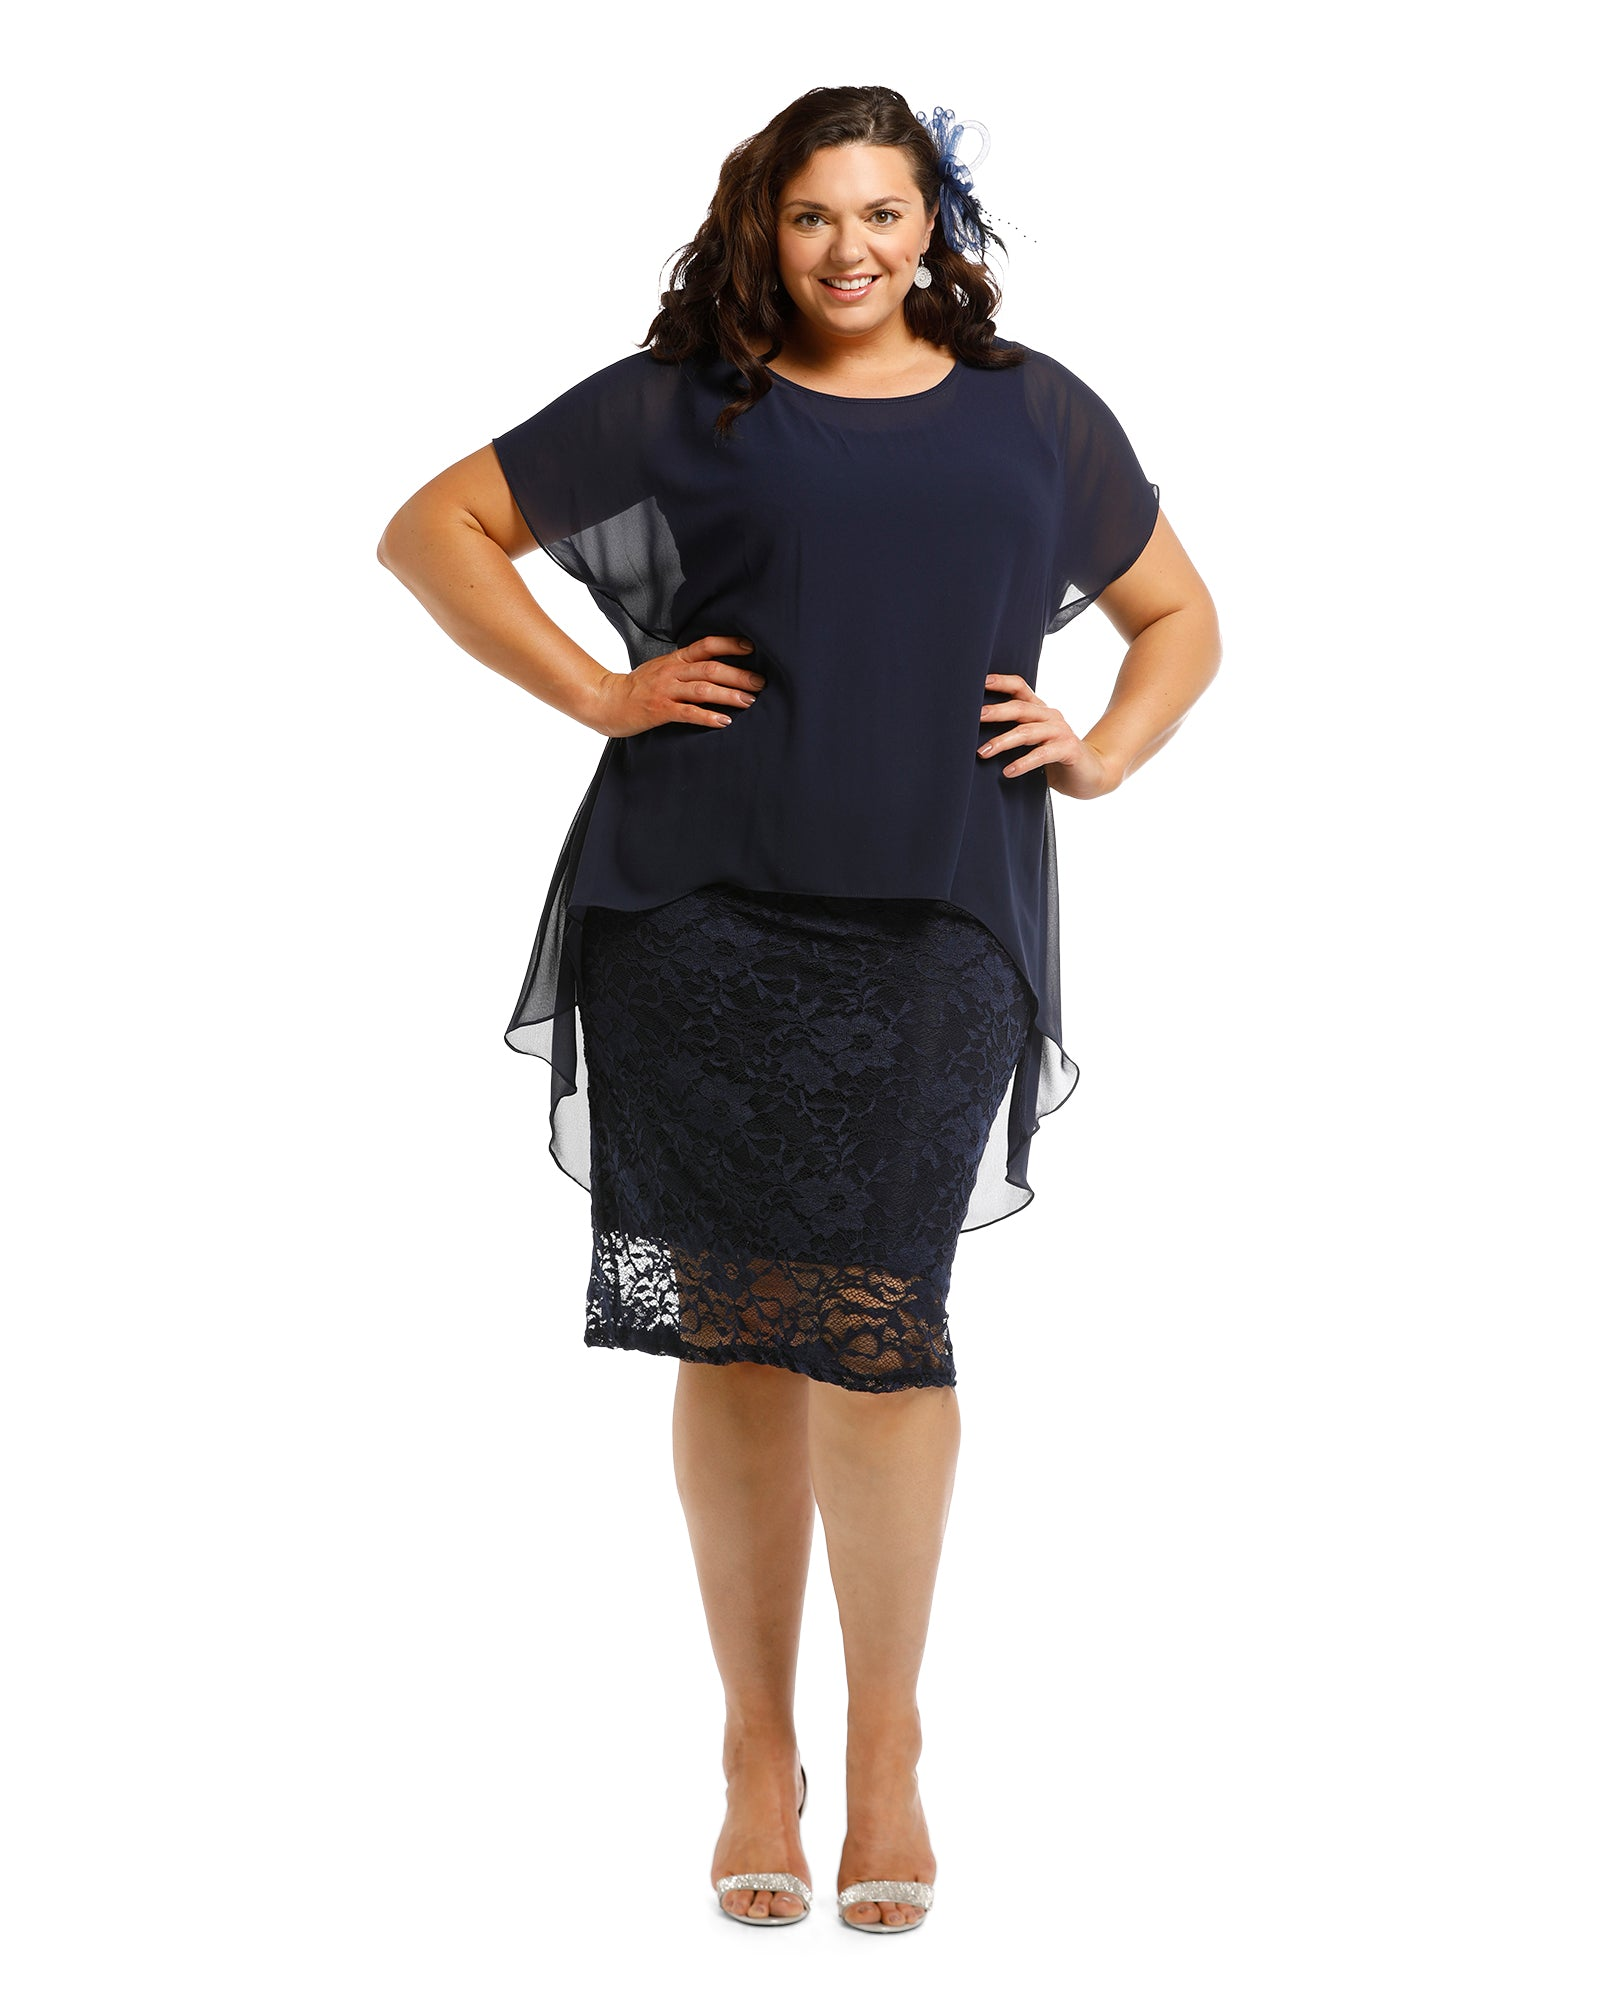 Avalon Stretch Lace Dress - Navy last size 12